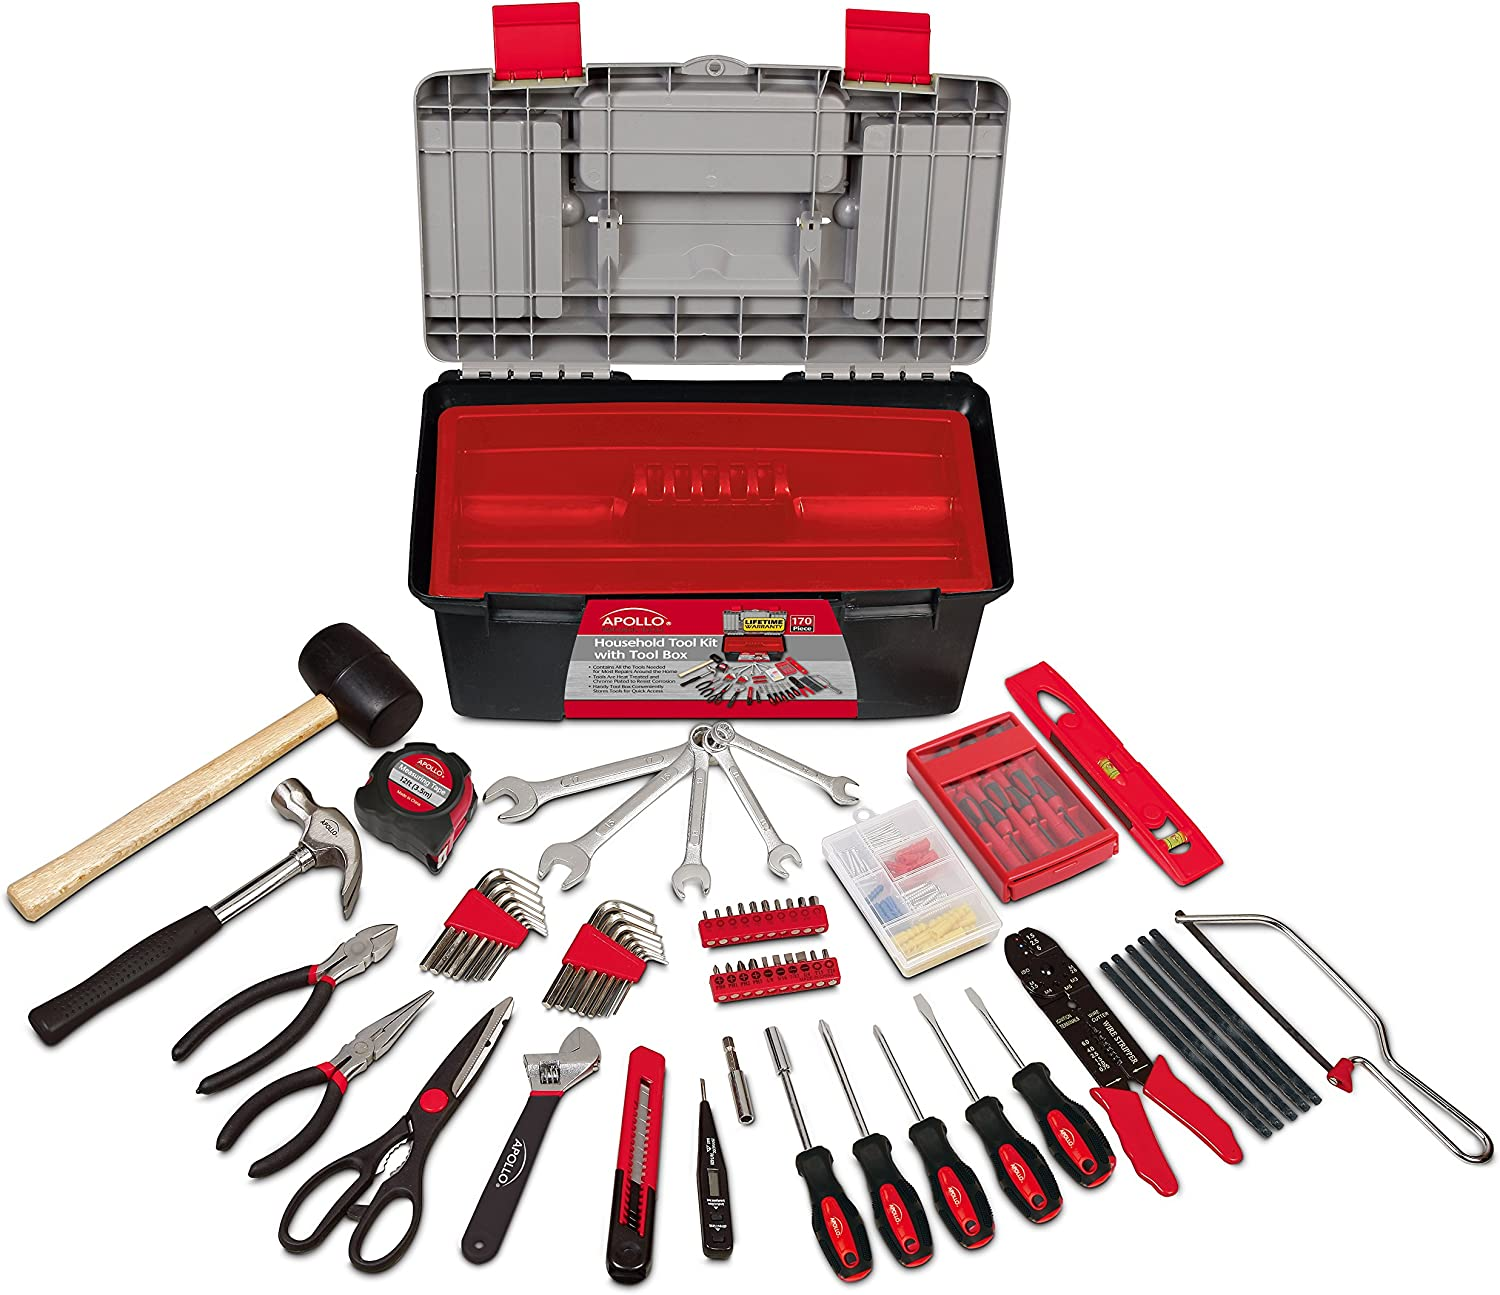 Apollo Tools DT7102 170 Piece Complete Household Tool Kit with Large Heavy Duty Tool Box